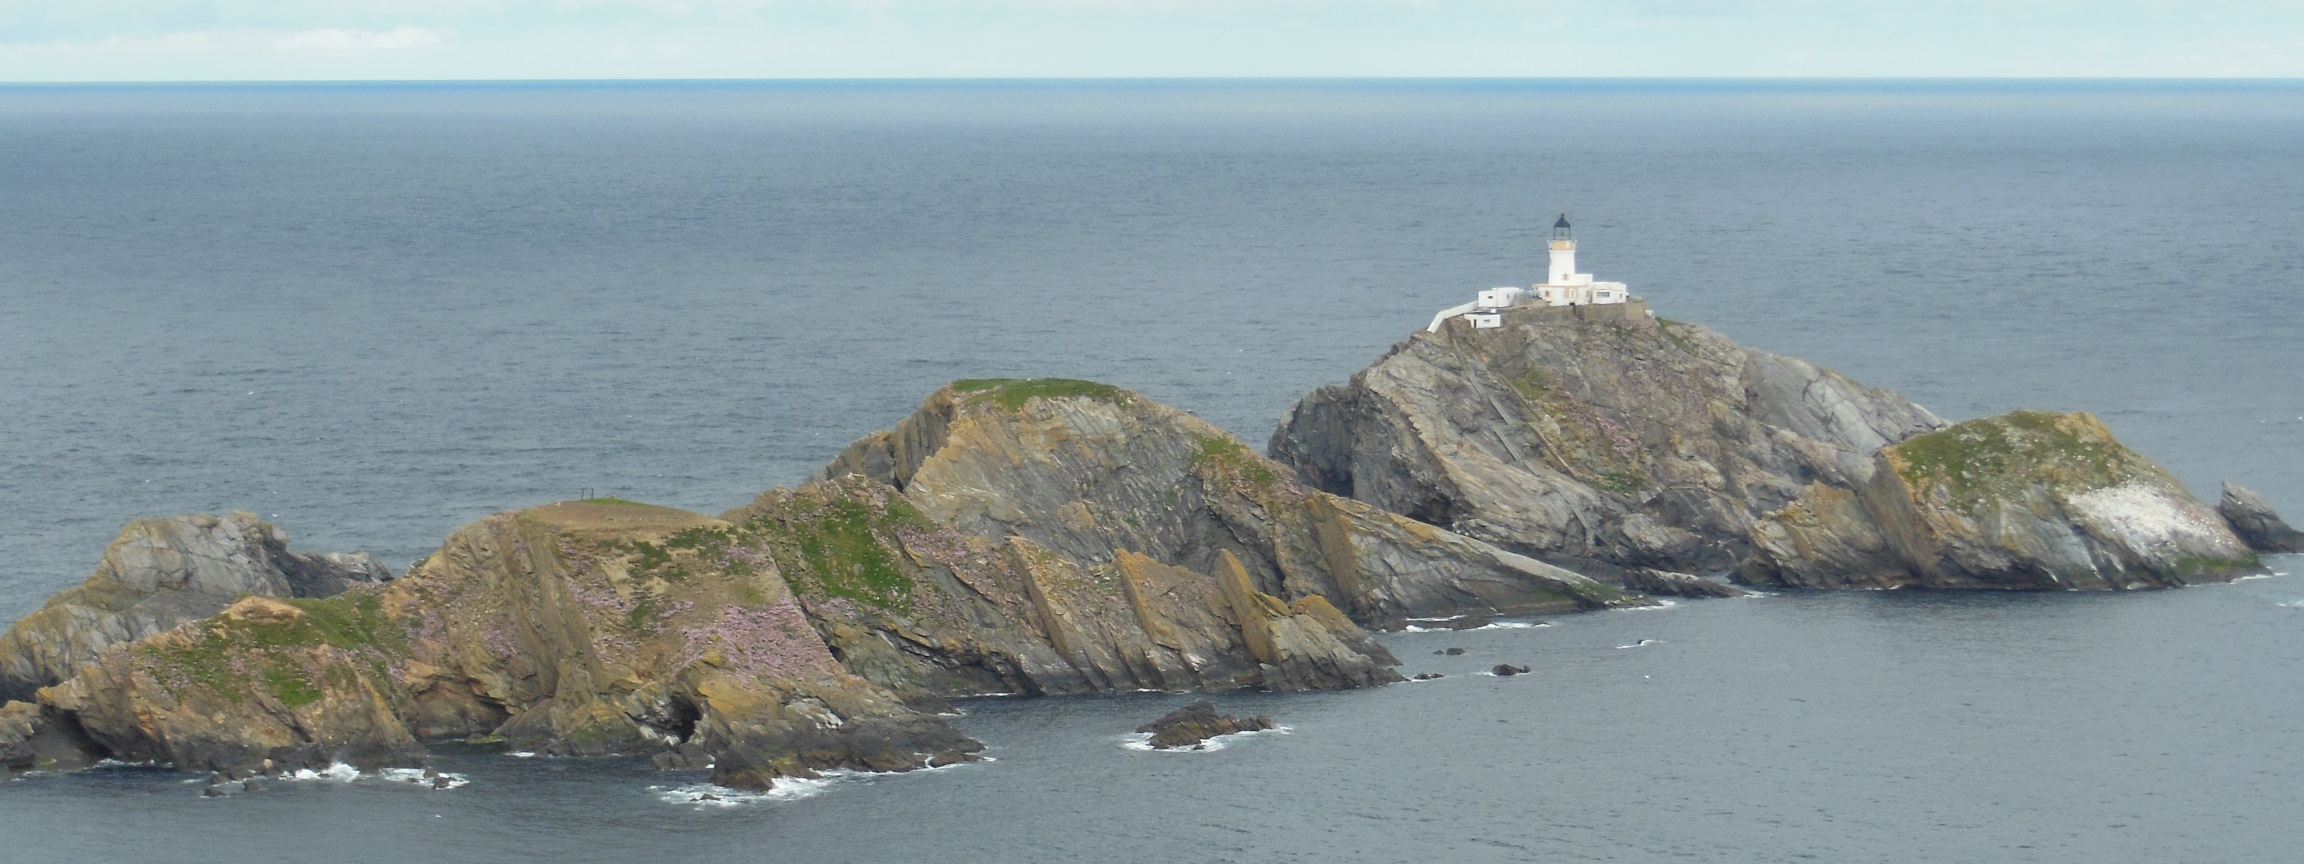 The island of Muckle Flugga